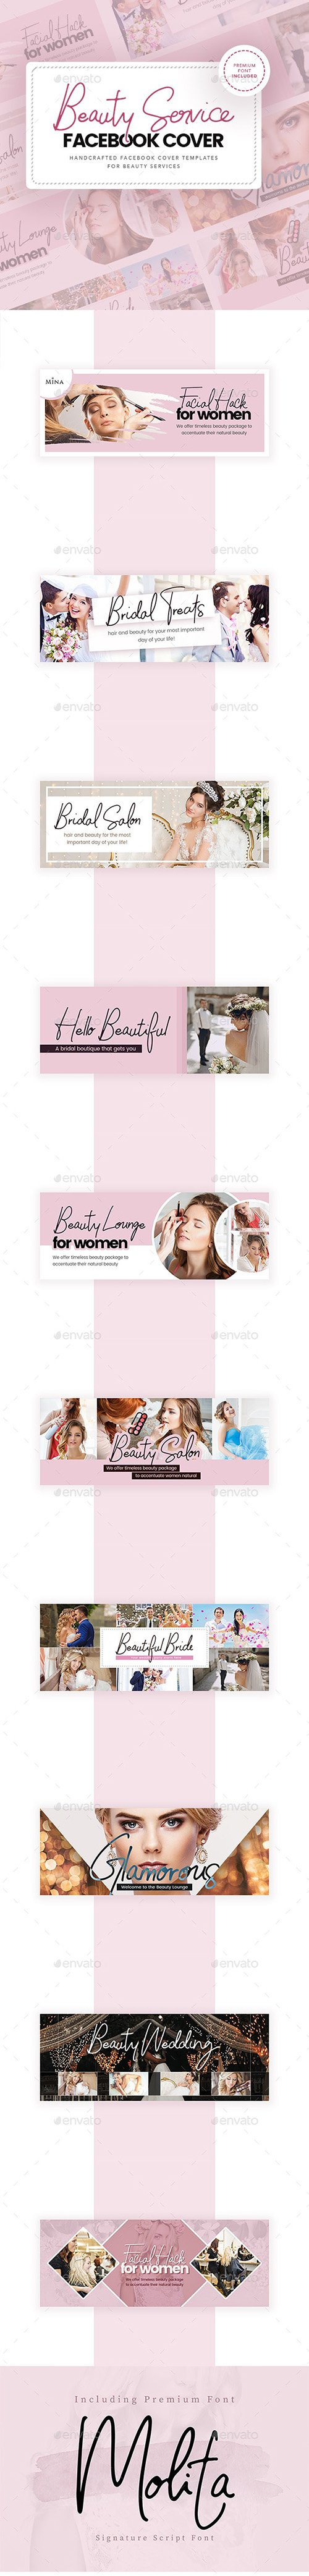 GraphicRiver - Beauty Service Facebook Cover 24742912